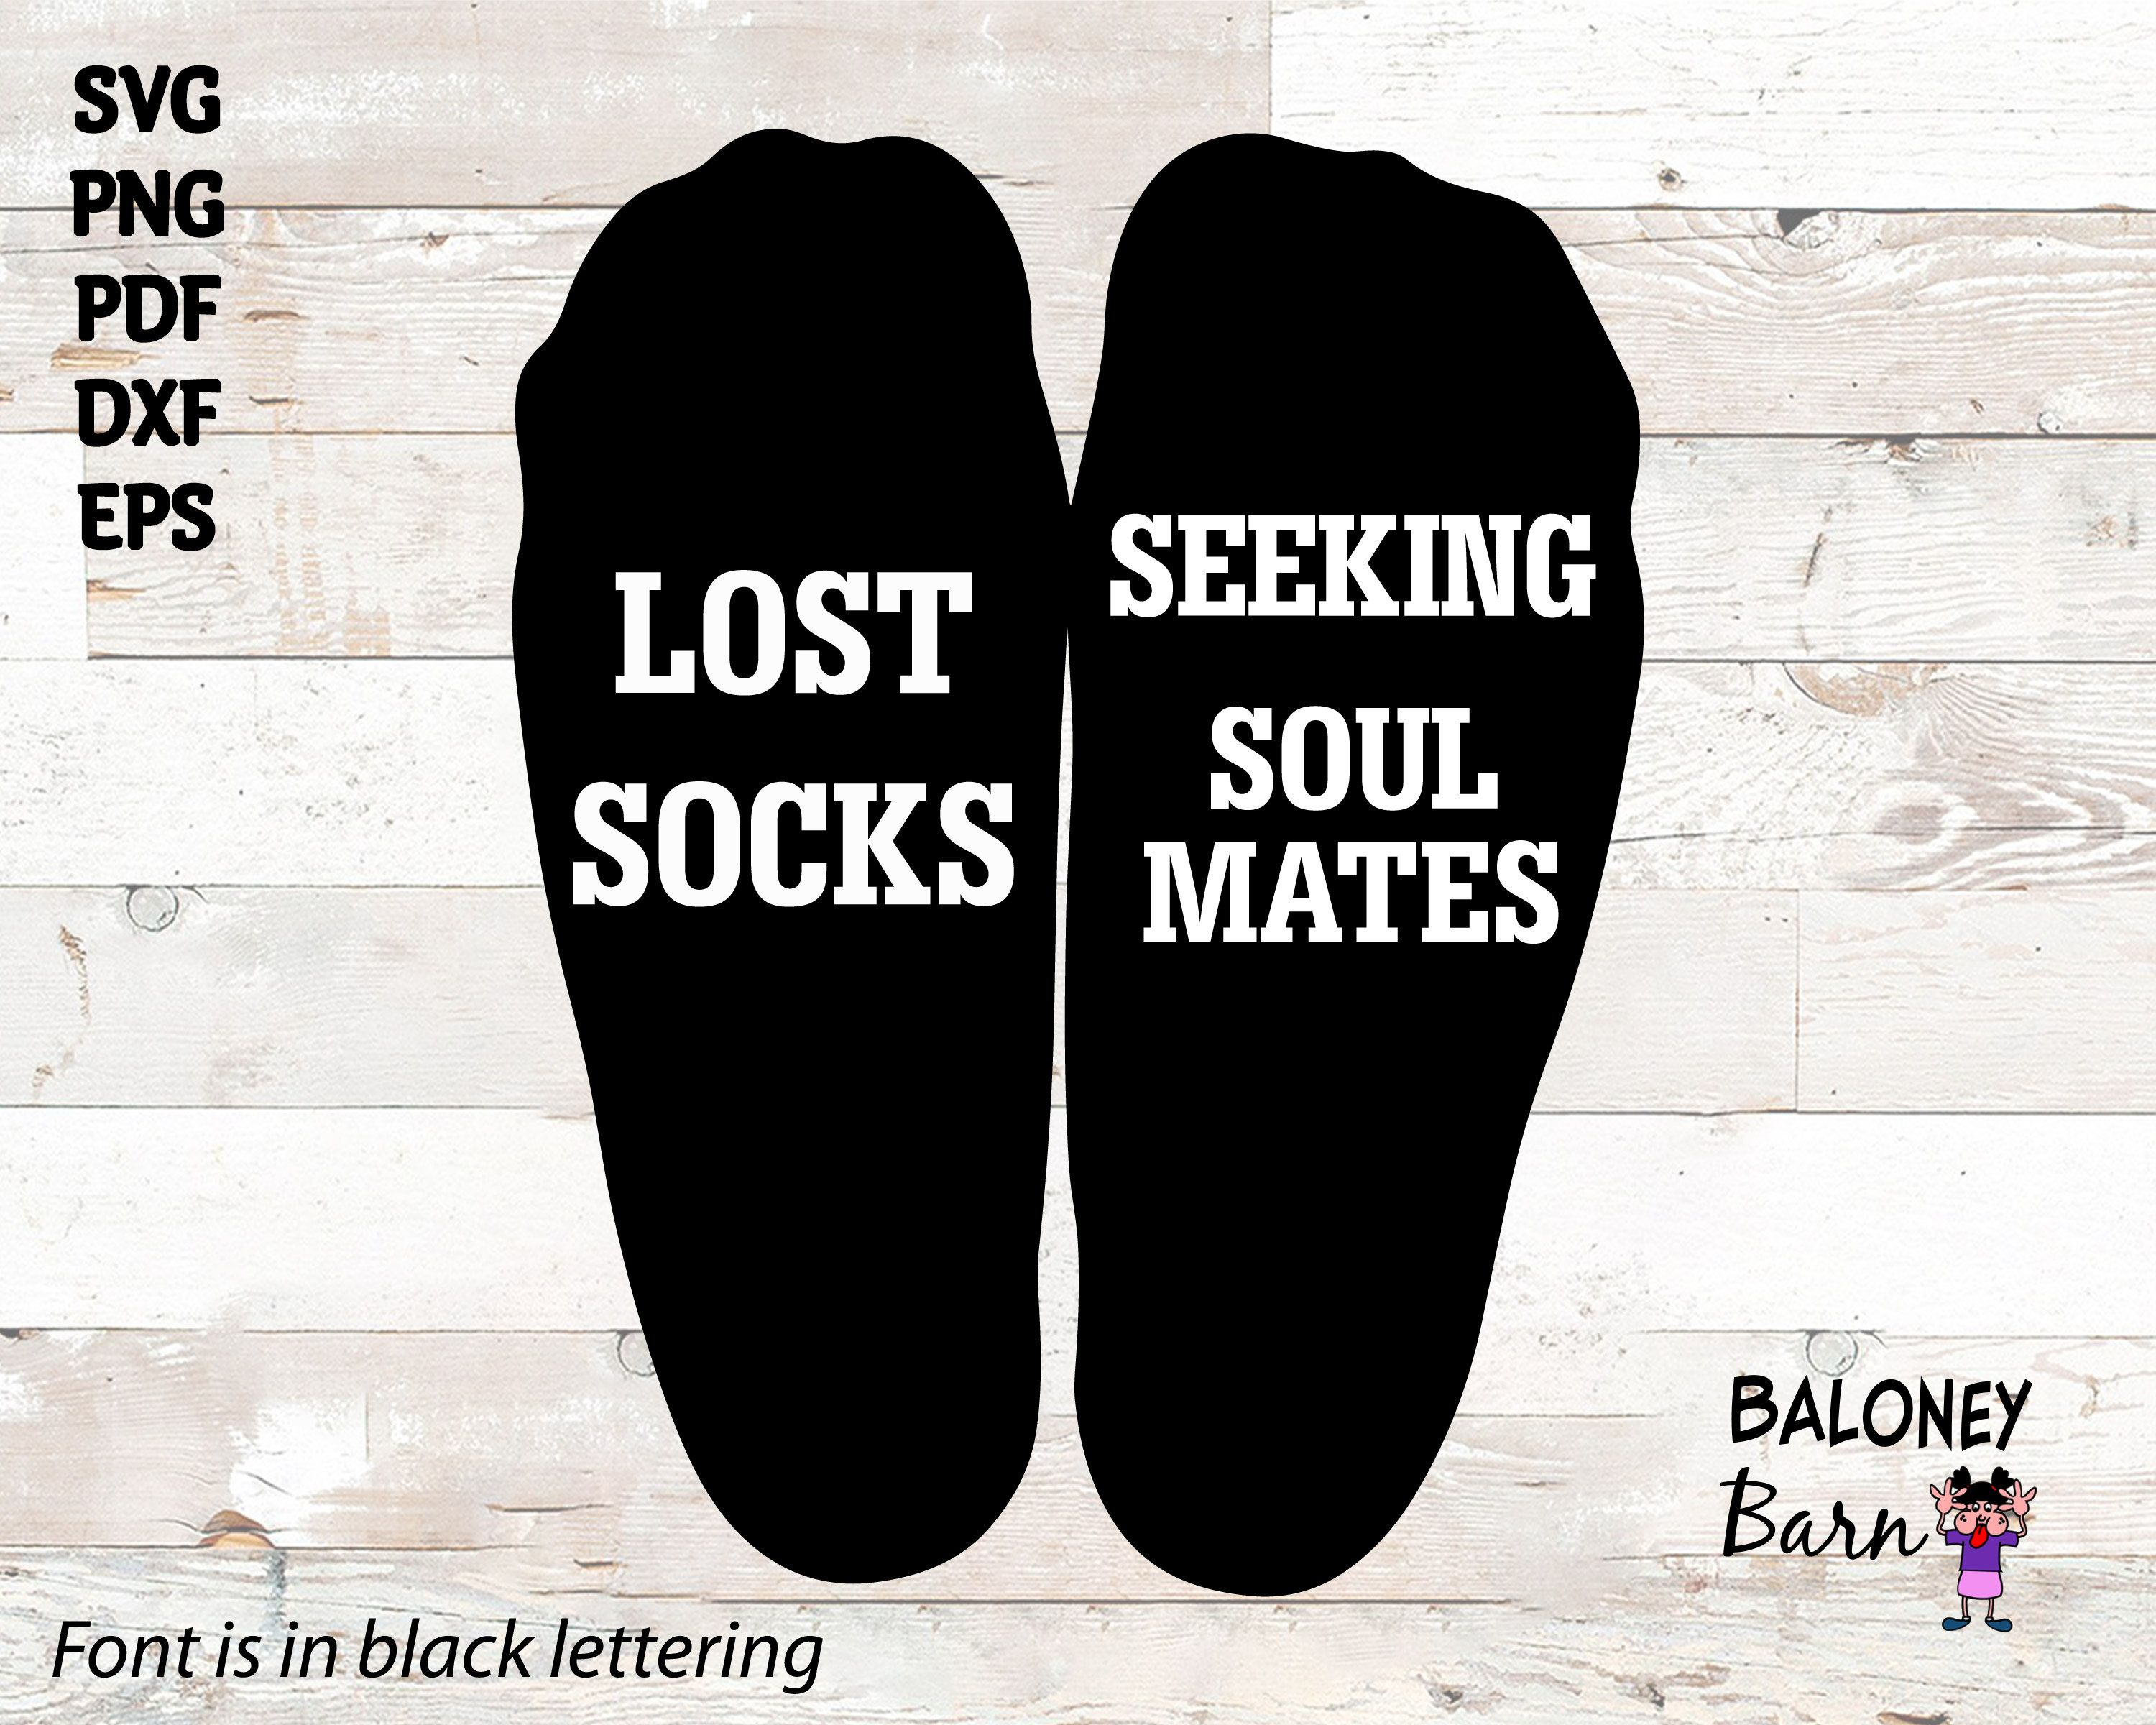 Lost Socks Svg Sock Quote Seeking Soulmate Unisex Sock Gift Sock Saying Looking For Love Digital Download In 2021 Socks Quotes Gifts For Cancer Patients Sock Gifts